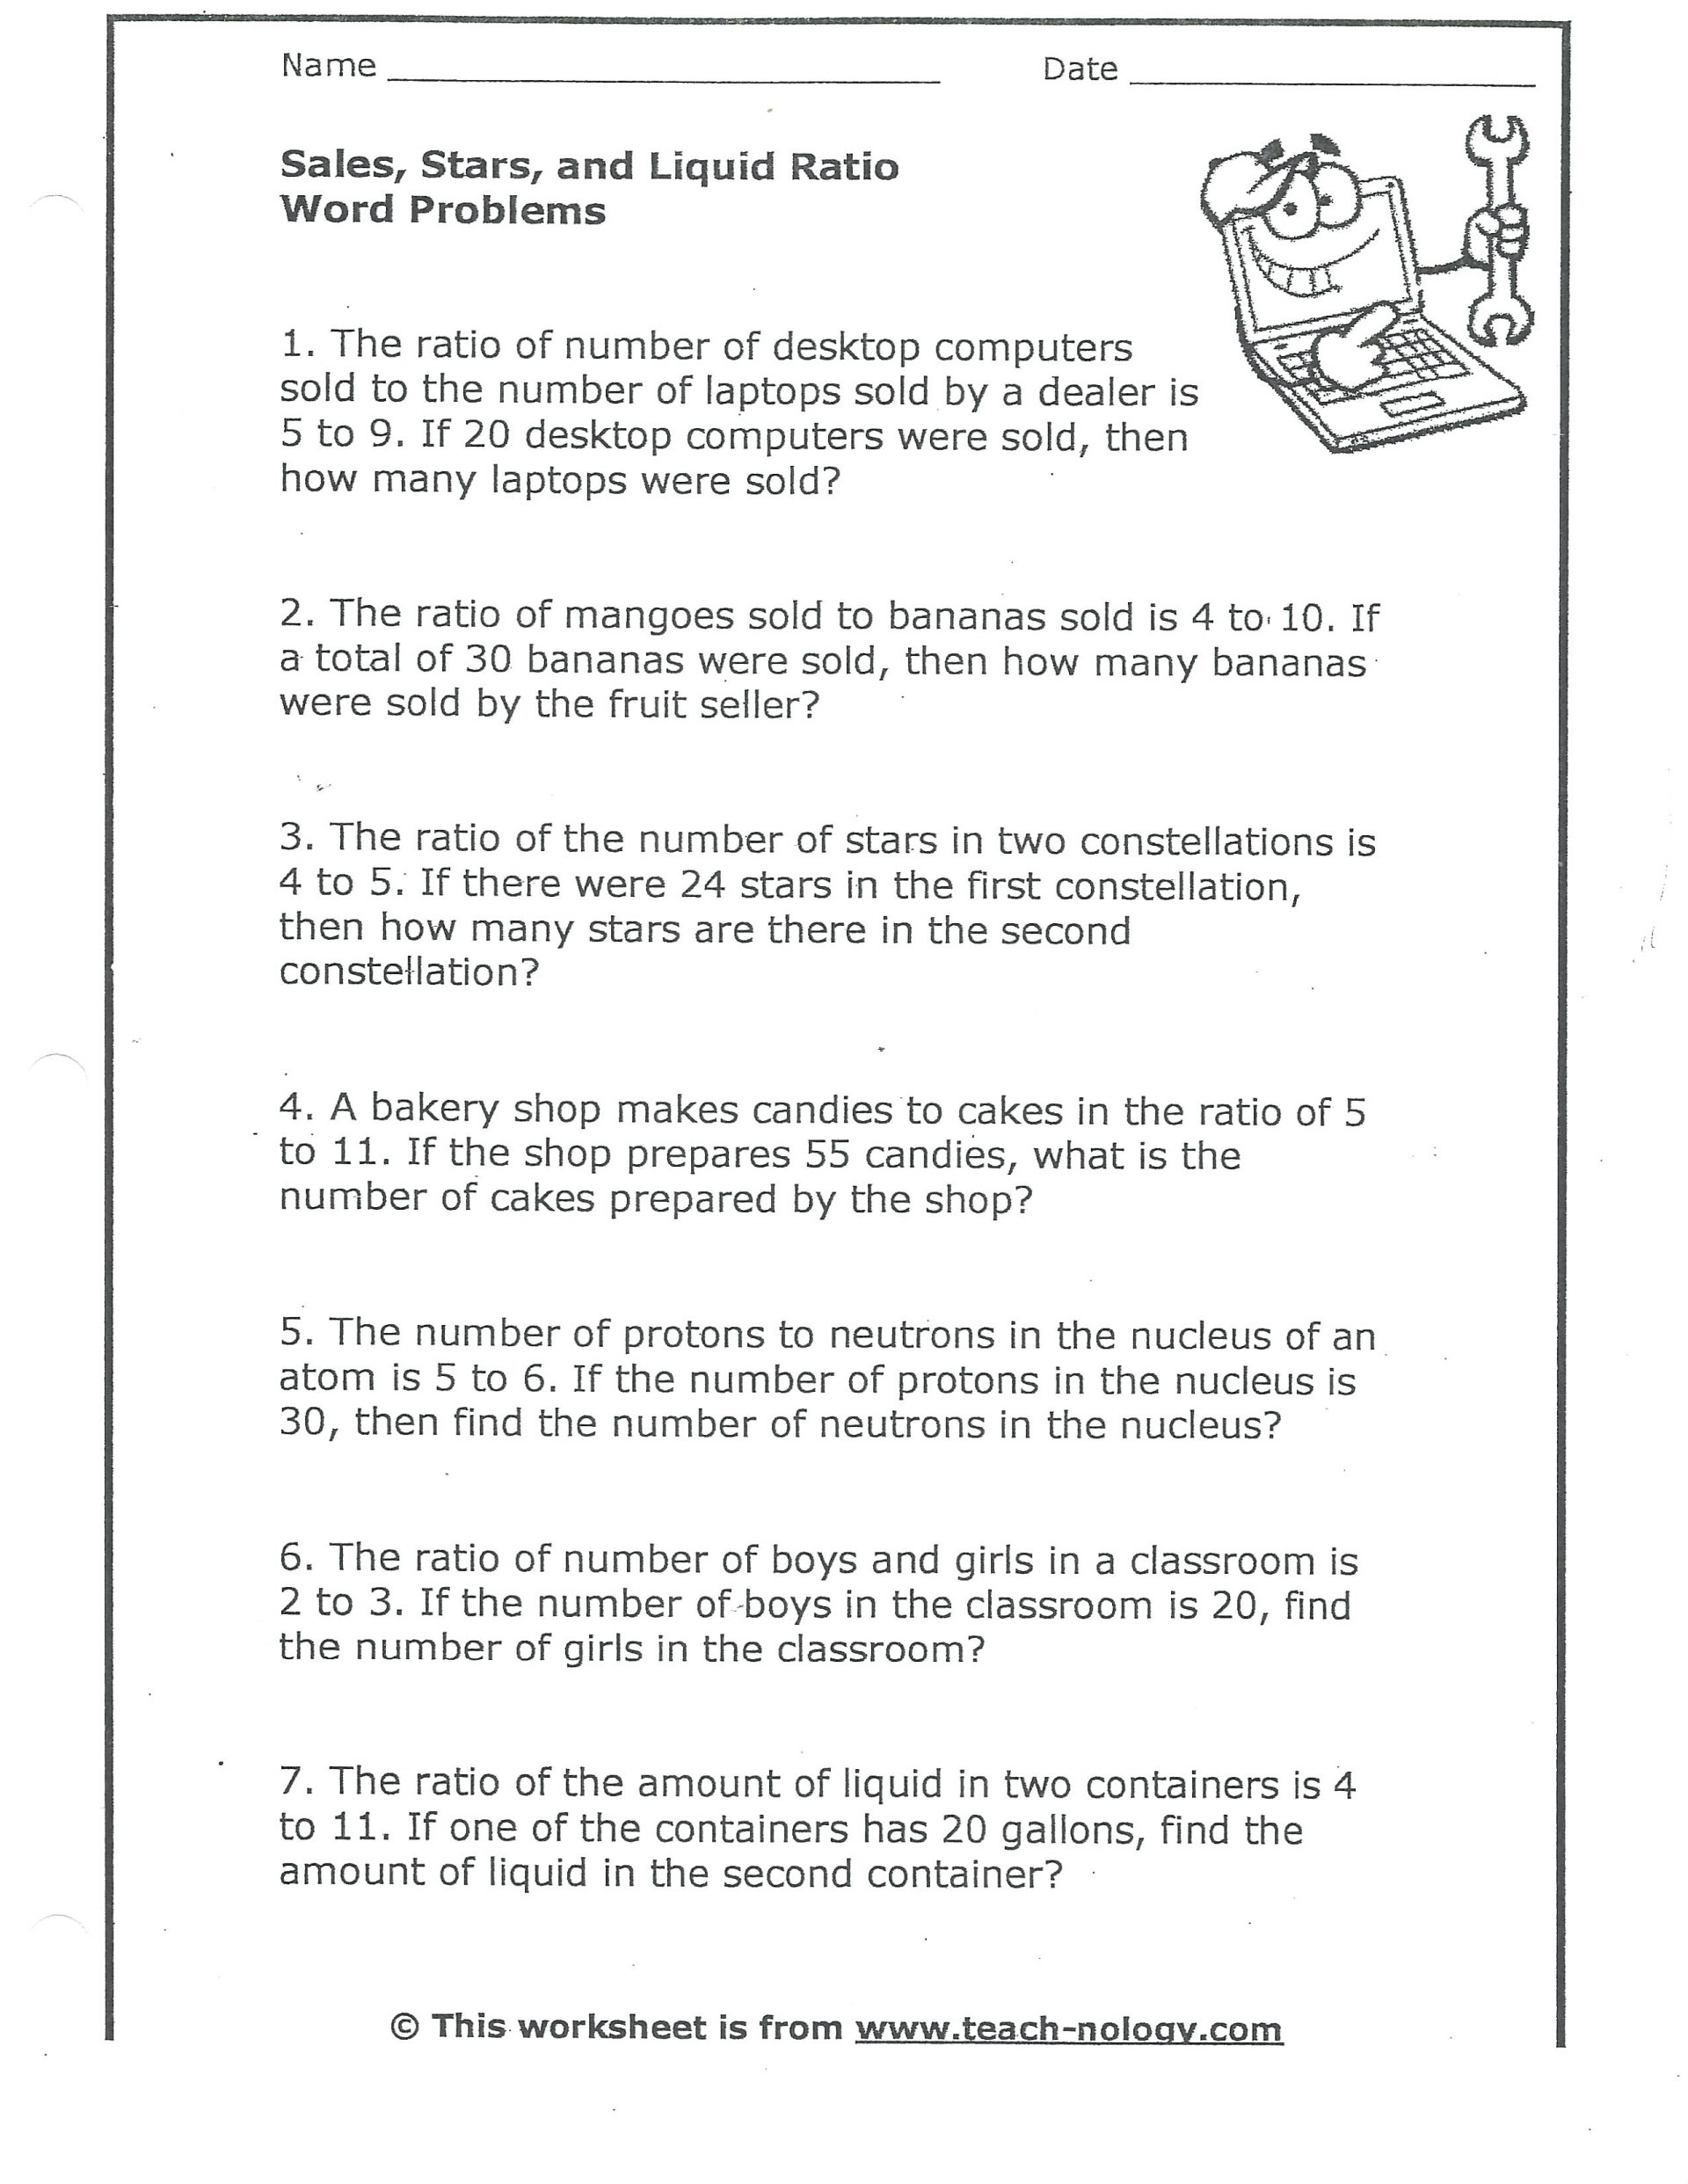 025 Free Printable Math Word Problems 7th Grade For